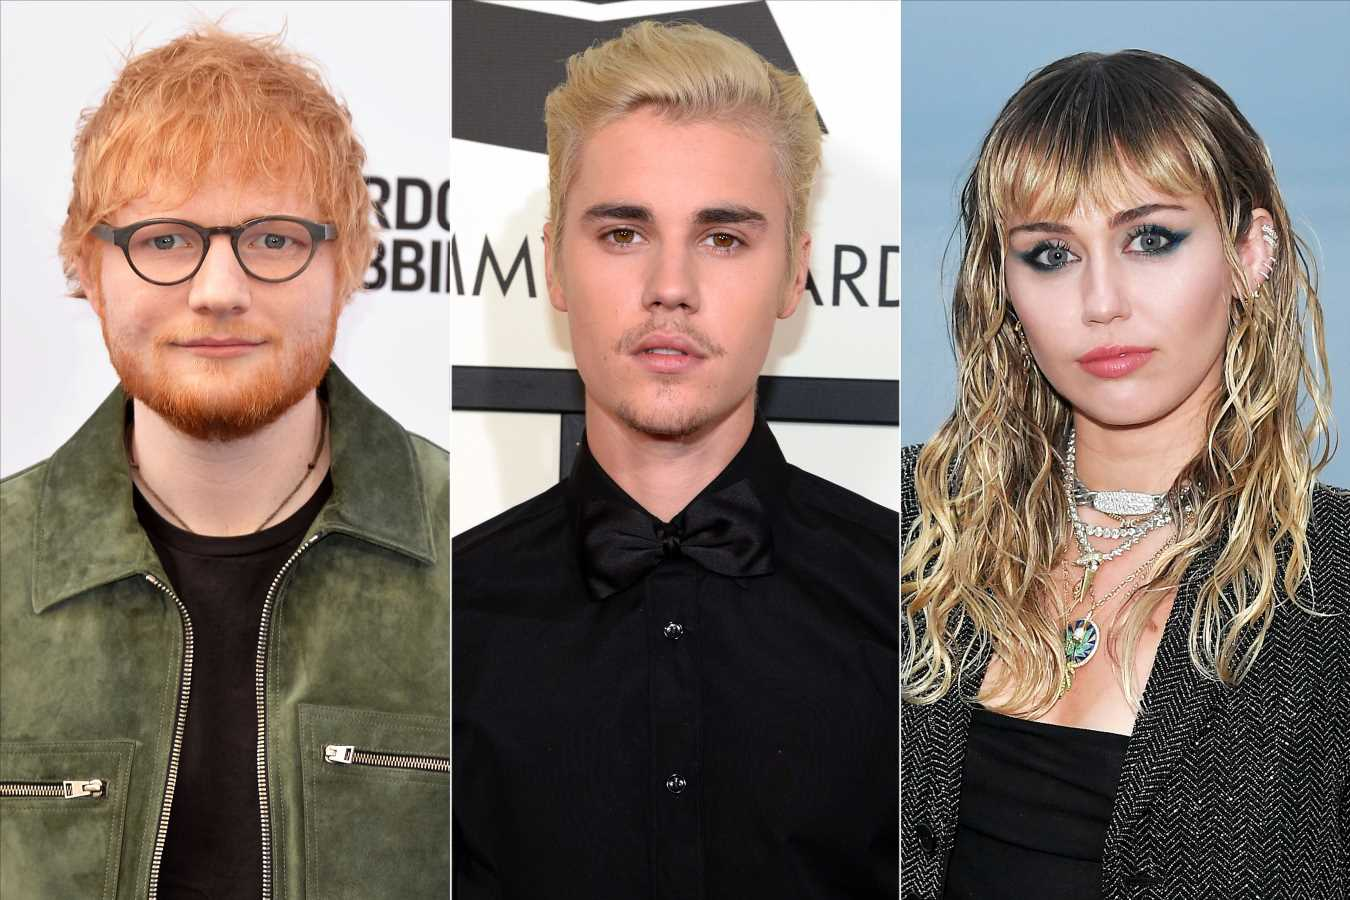 Miley Cyrus, Ed Sheeran, Khloé Kardashian and More Support Justin Bieber After Vulnerable Post